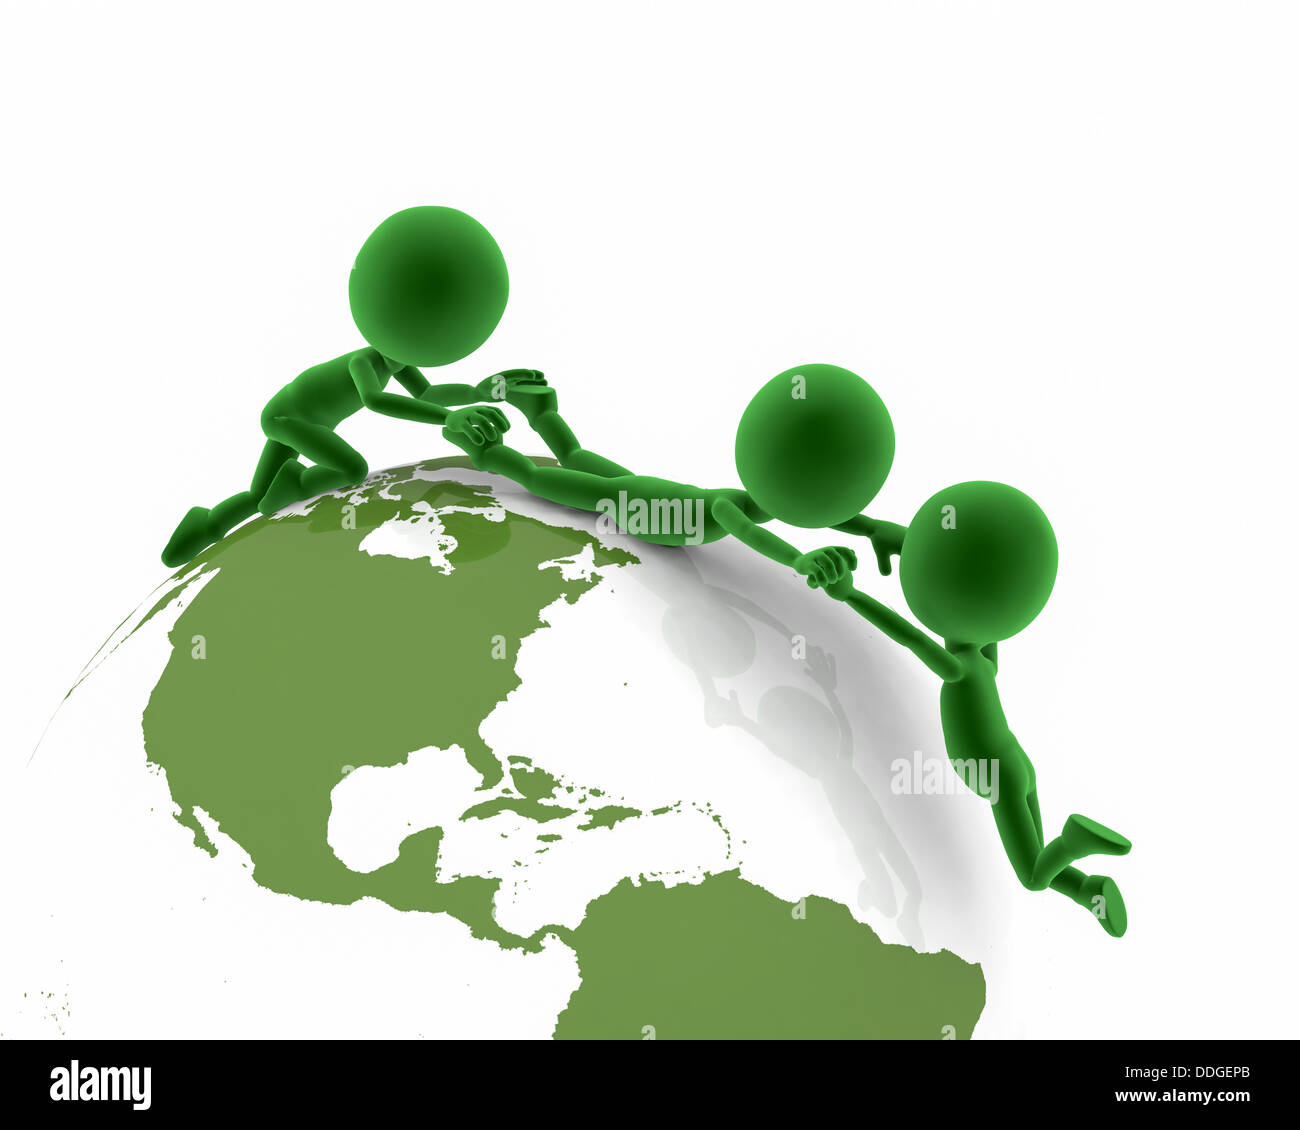 Global assistance / international aid / communication / green / environment / collaboration / working together concept - Stock Image